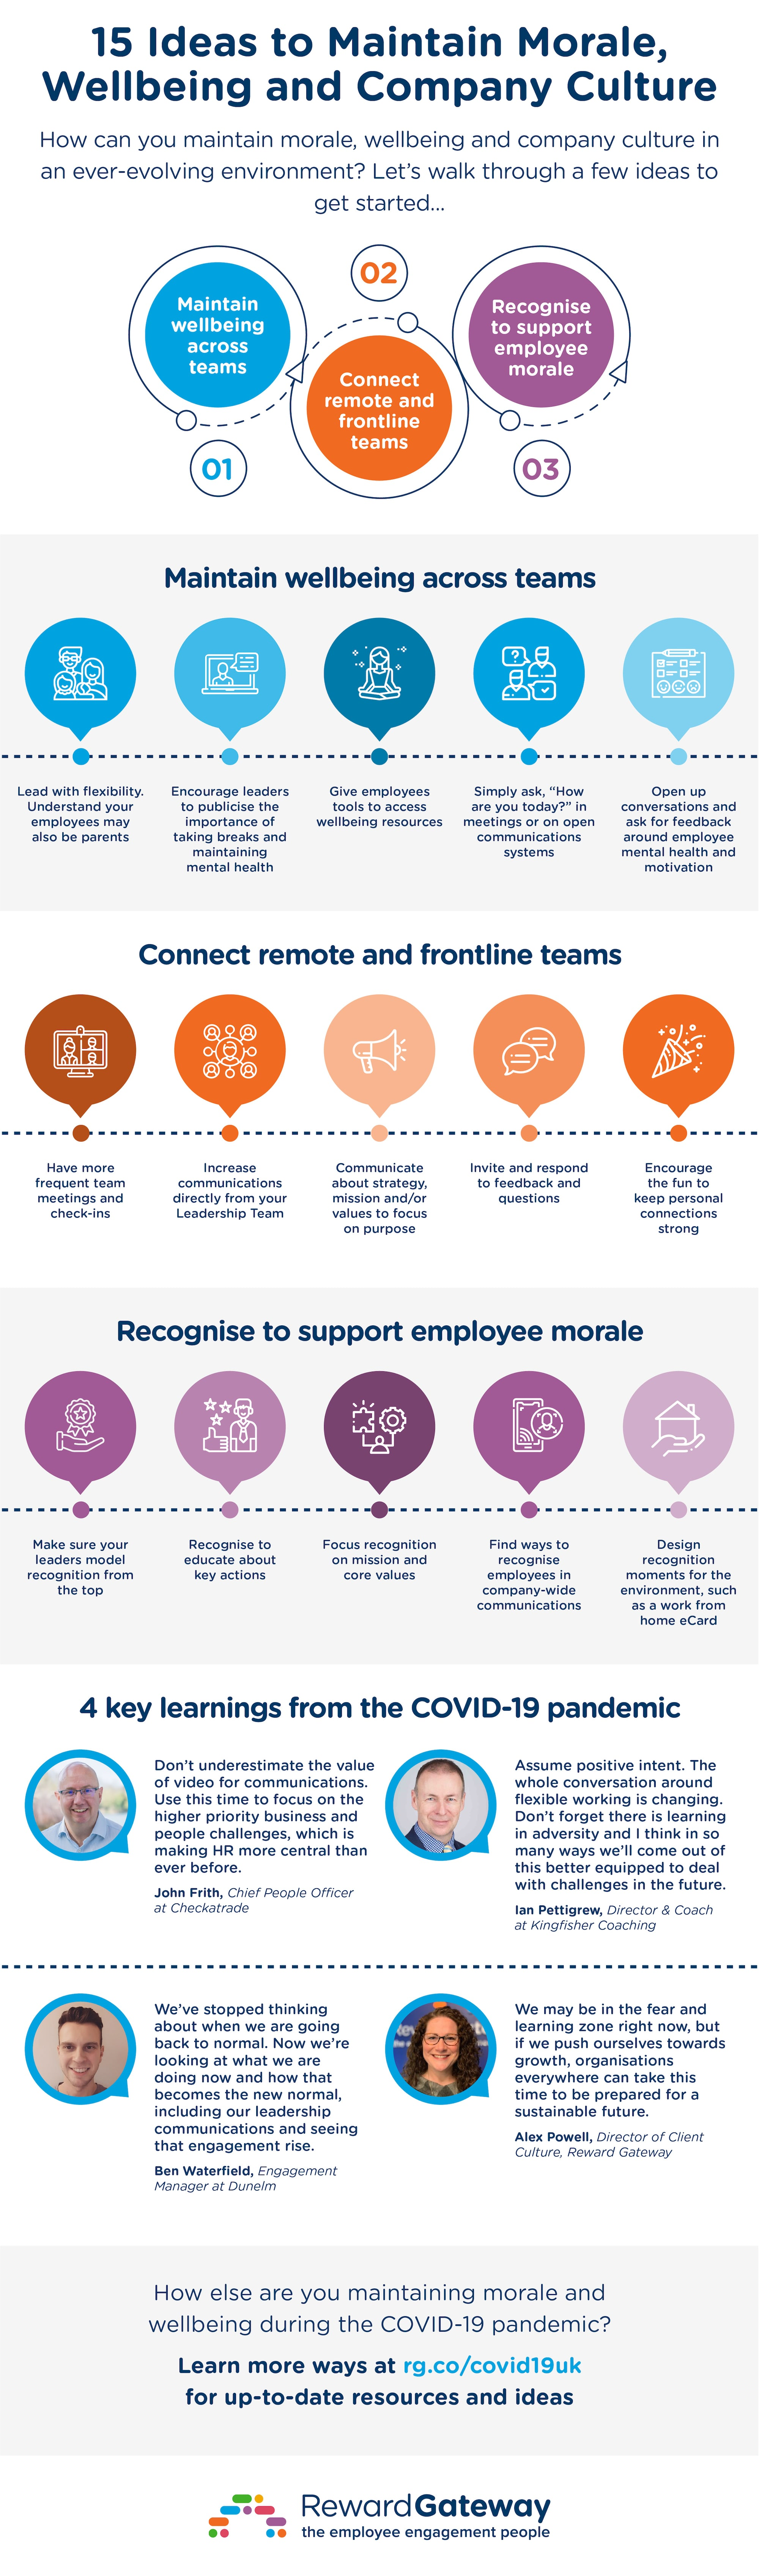 uk-infographic-15-ideas-maintain-morale-wellbeing-company-culture